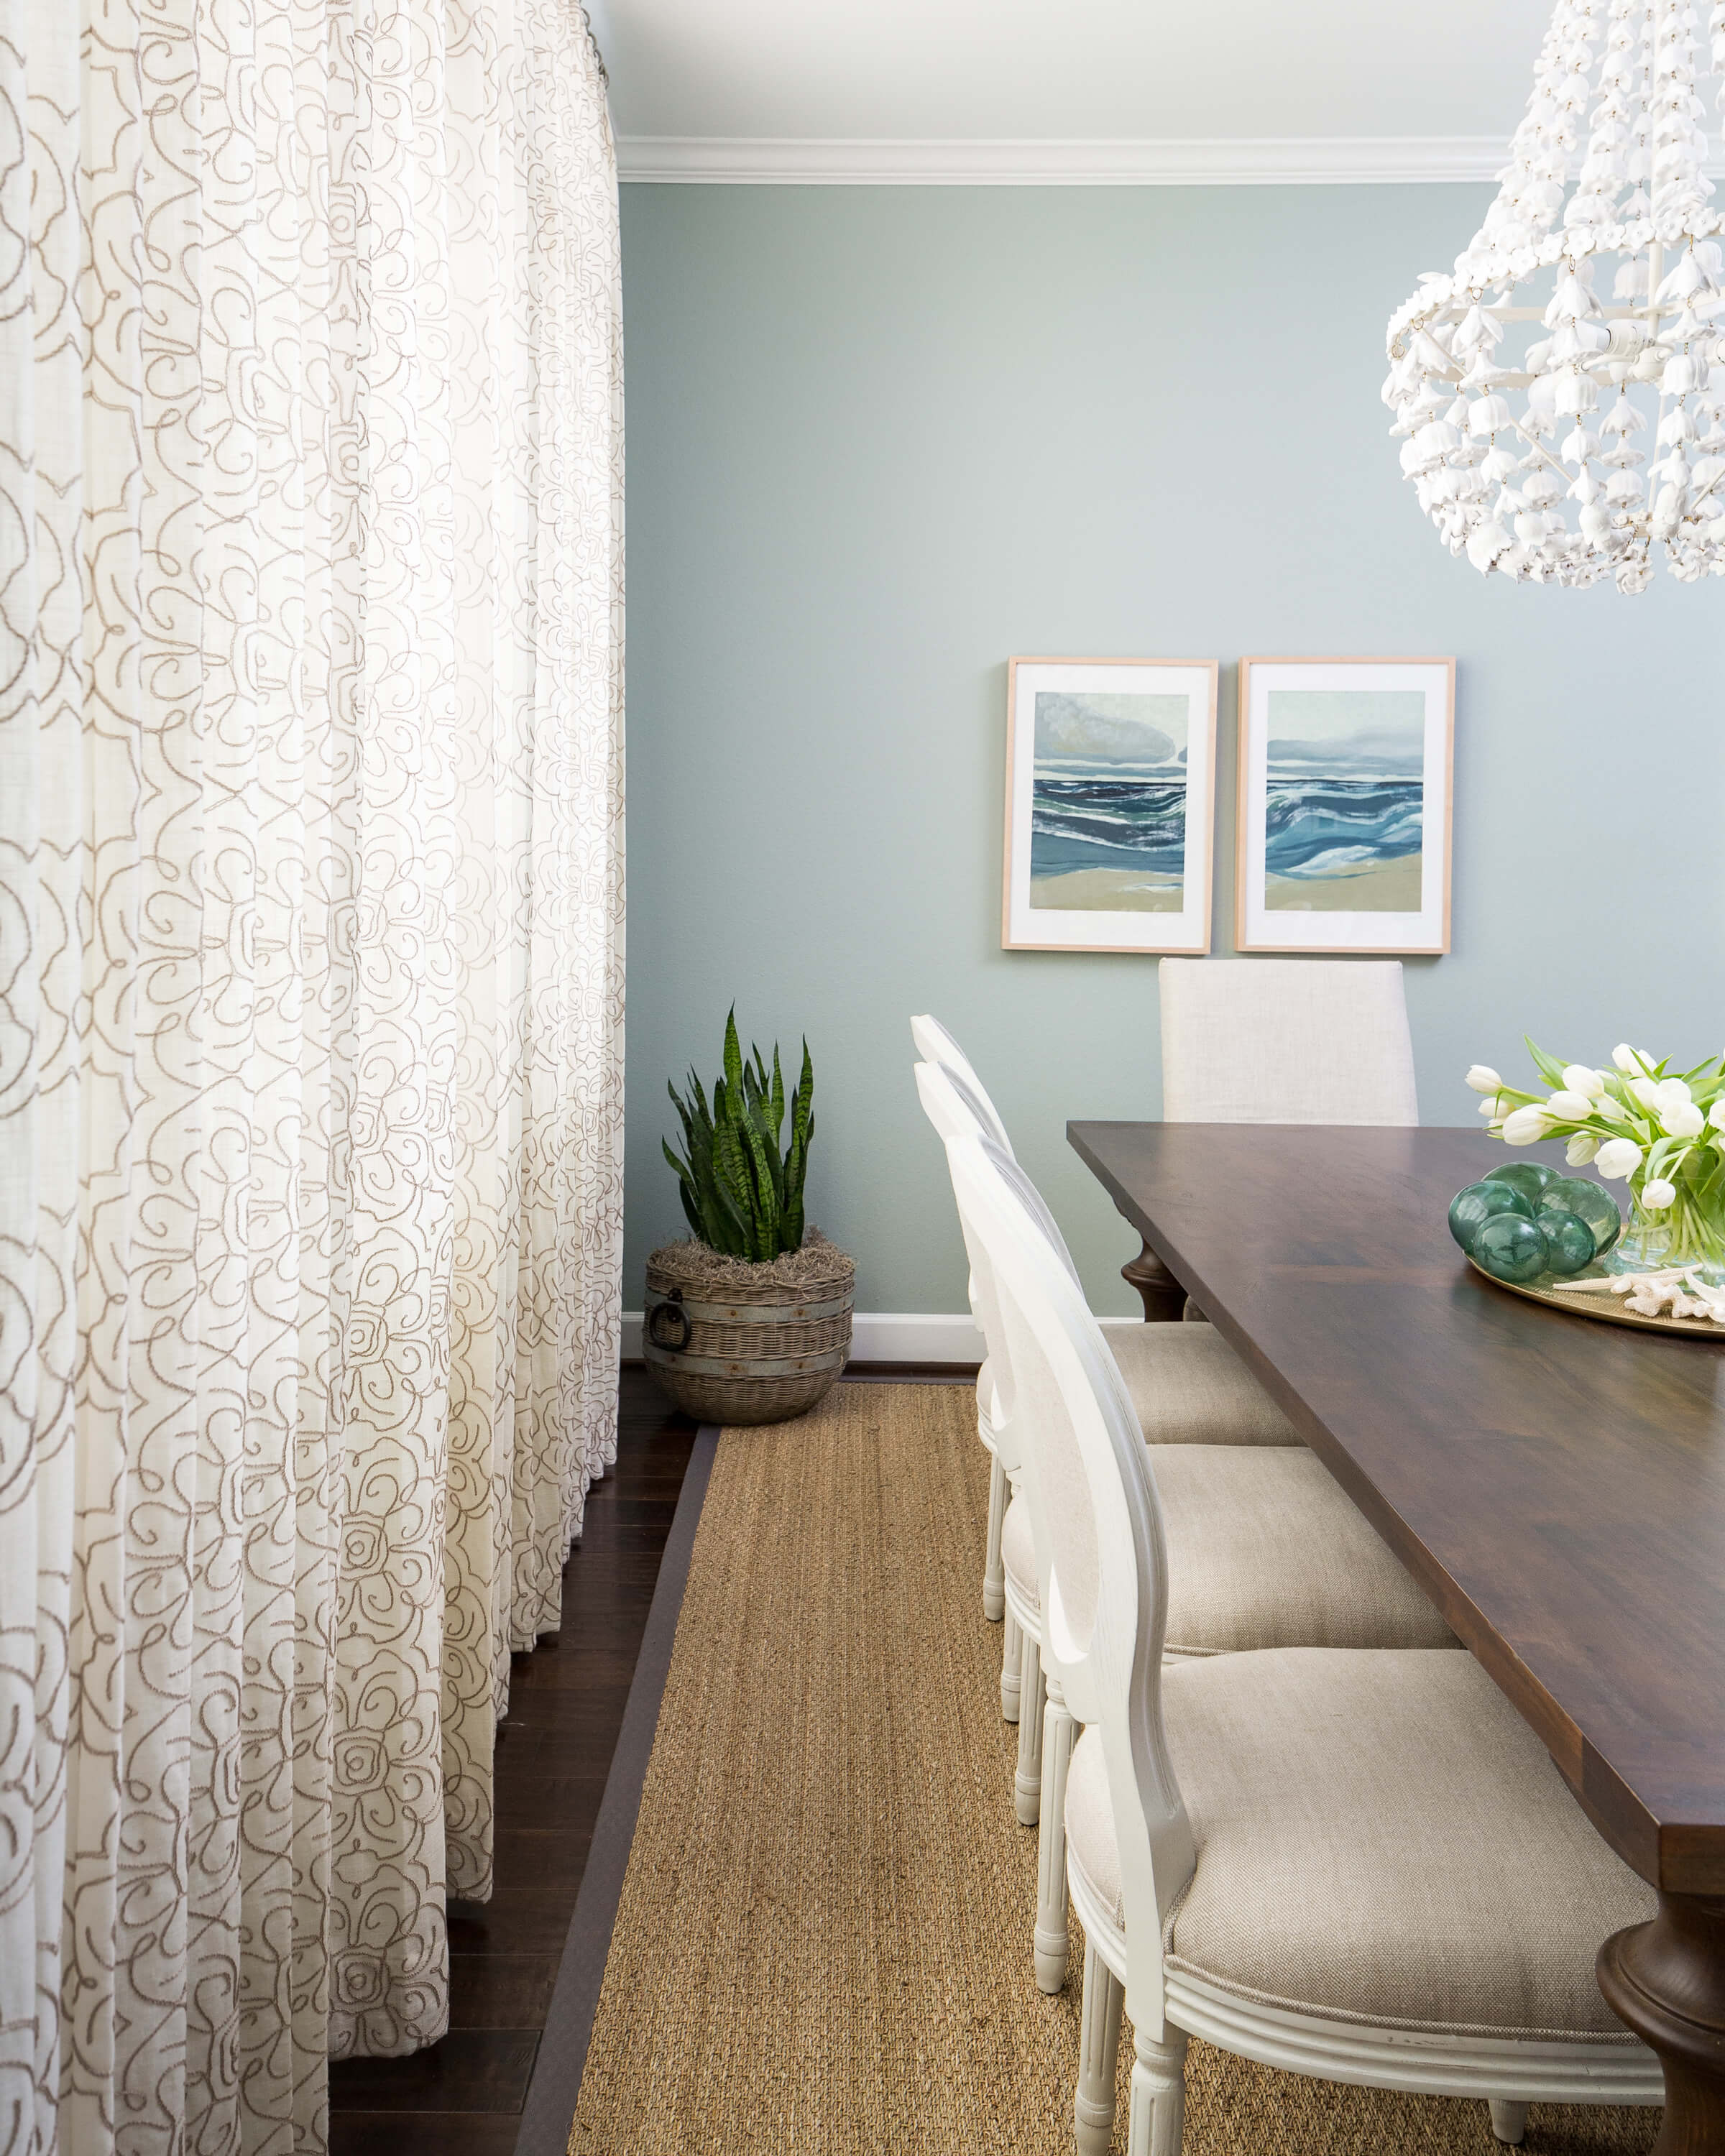 Crewel work sheer drapery panels add softness and subtle pattern in this coastal style dining room. Designer: Carla Aston, Photographer: Colleen Scott | #diningroom #coastalstyle #crewelwork #sheerdrapery #windowtreatment